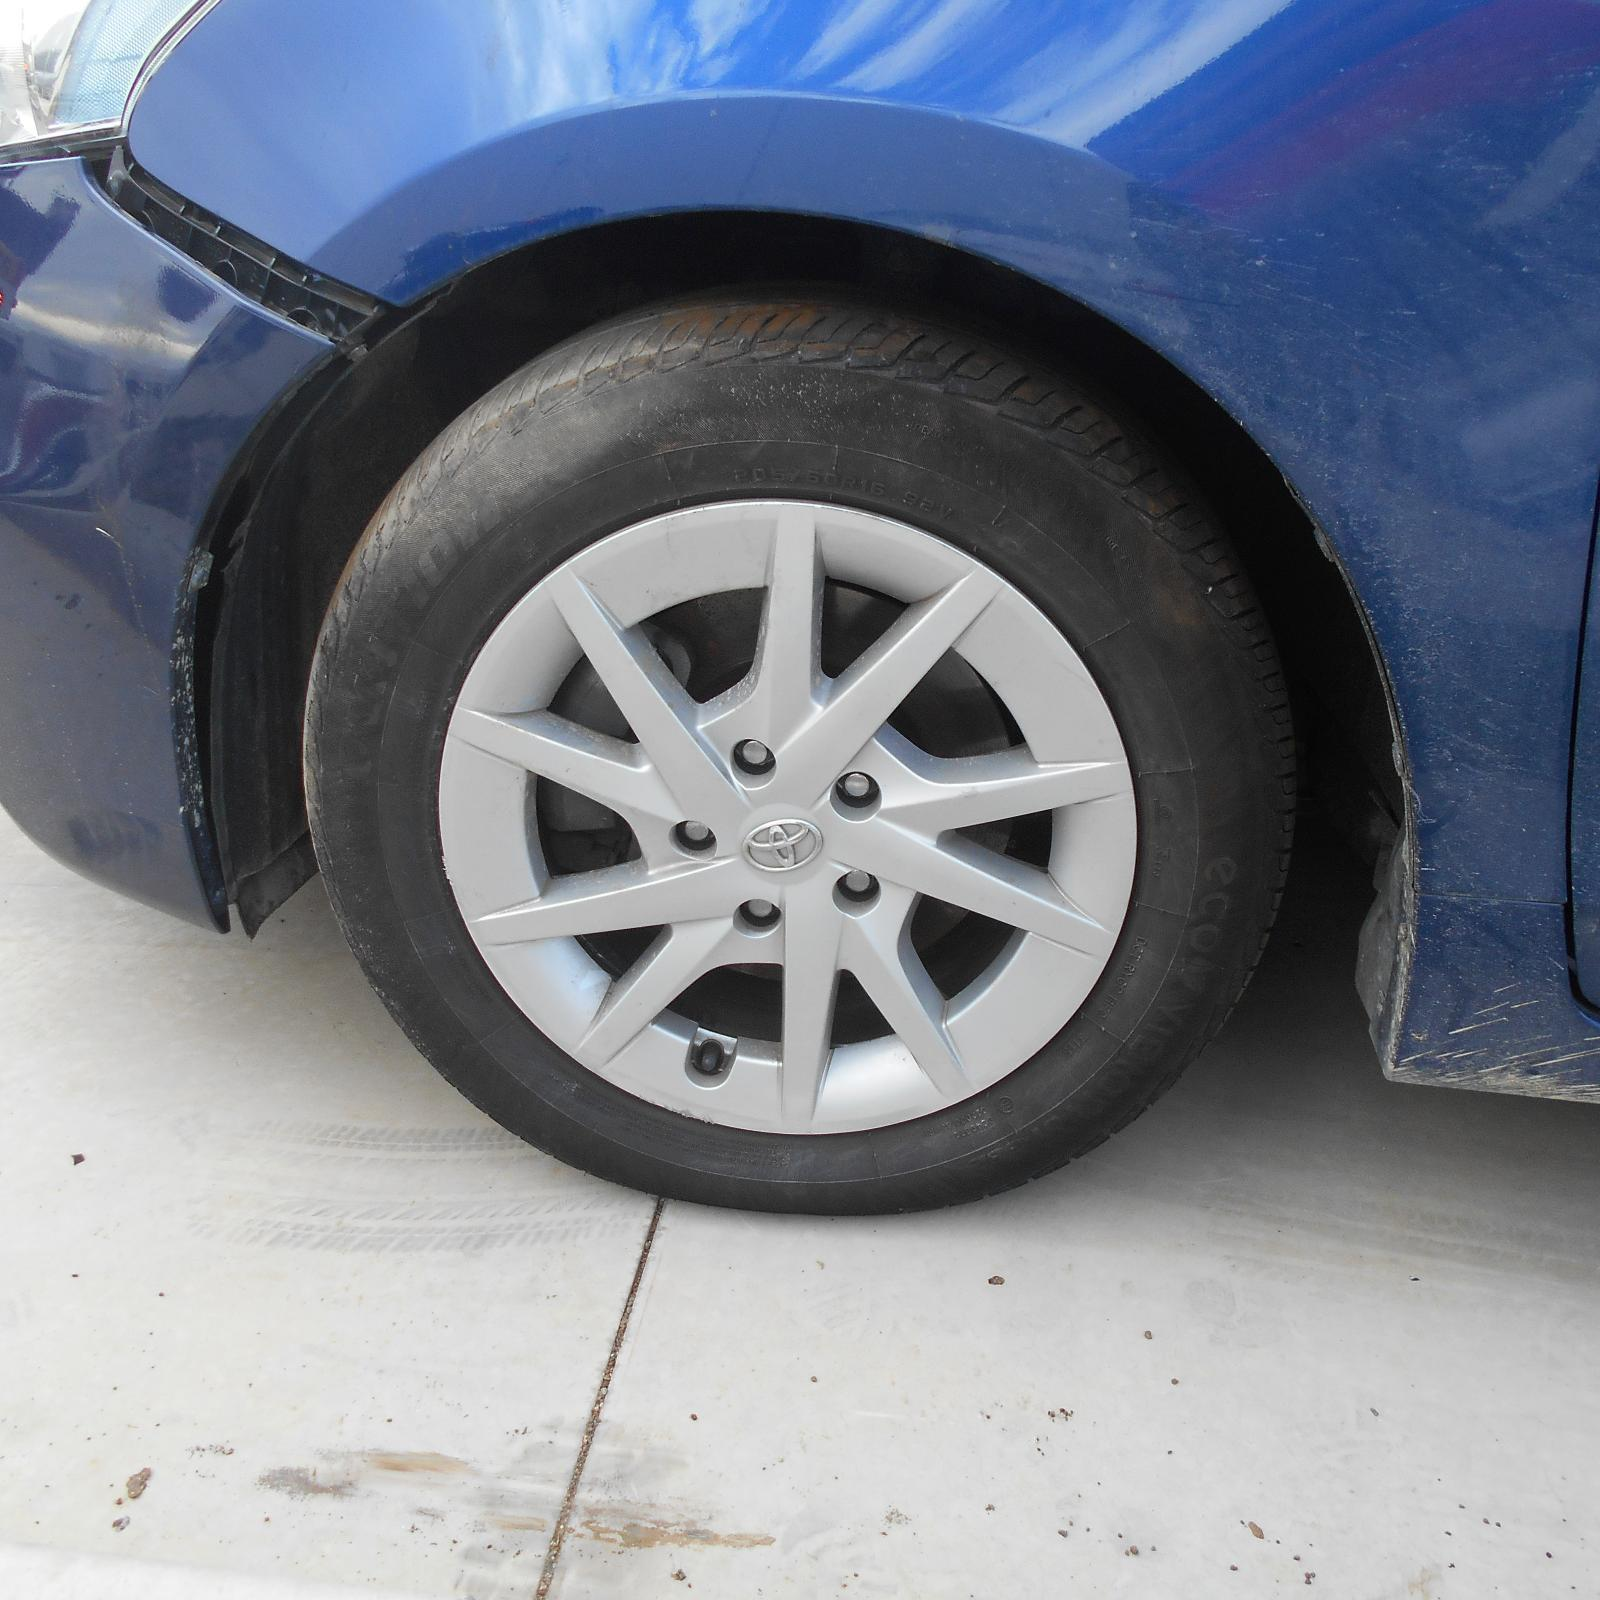 TOYOTA PRIUS, Wheel Mag, ZVW40R, PRIUS V, FACTORY, 16X6.5IN, 05/12-